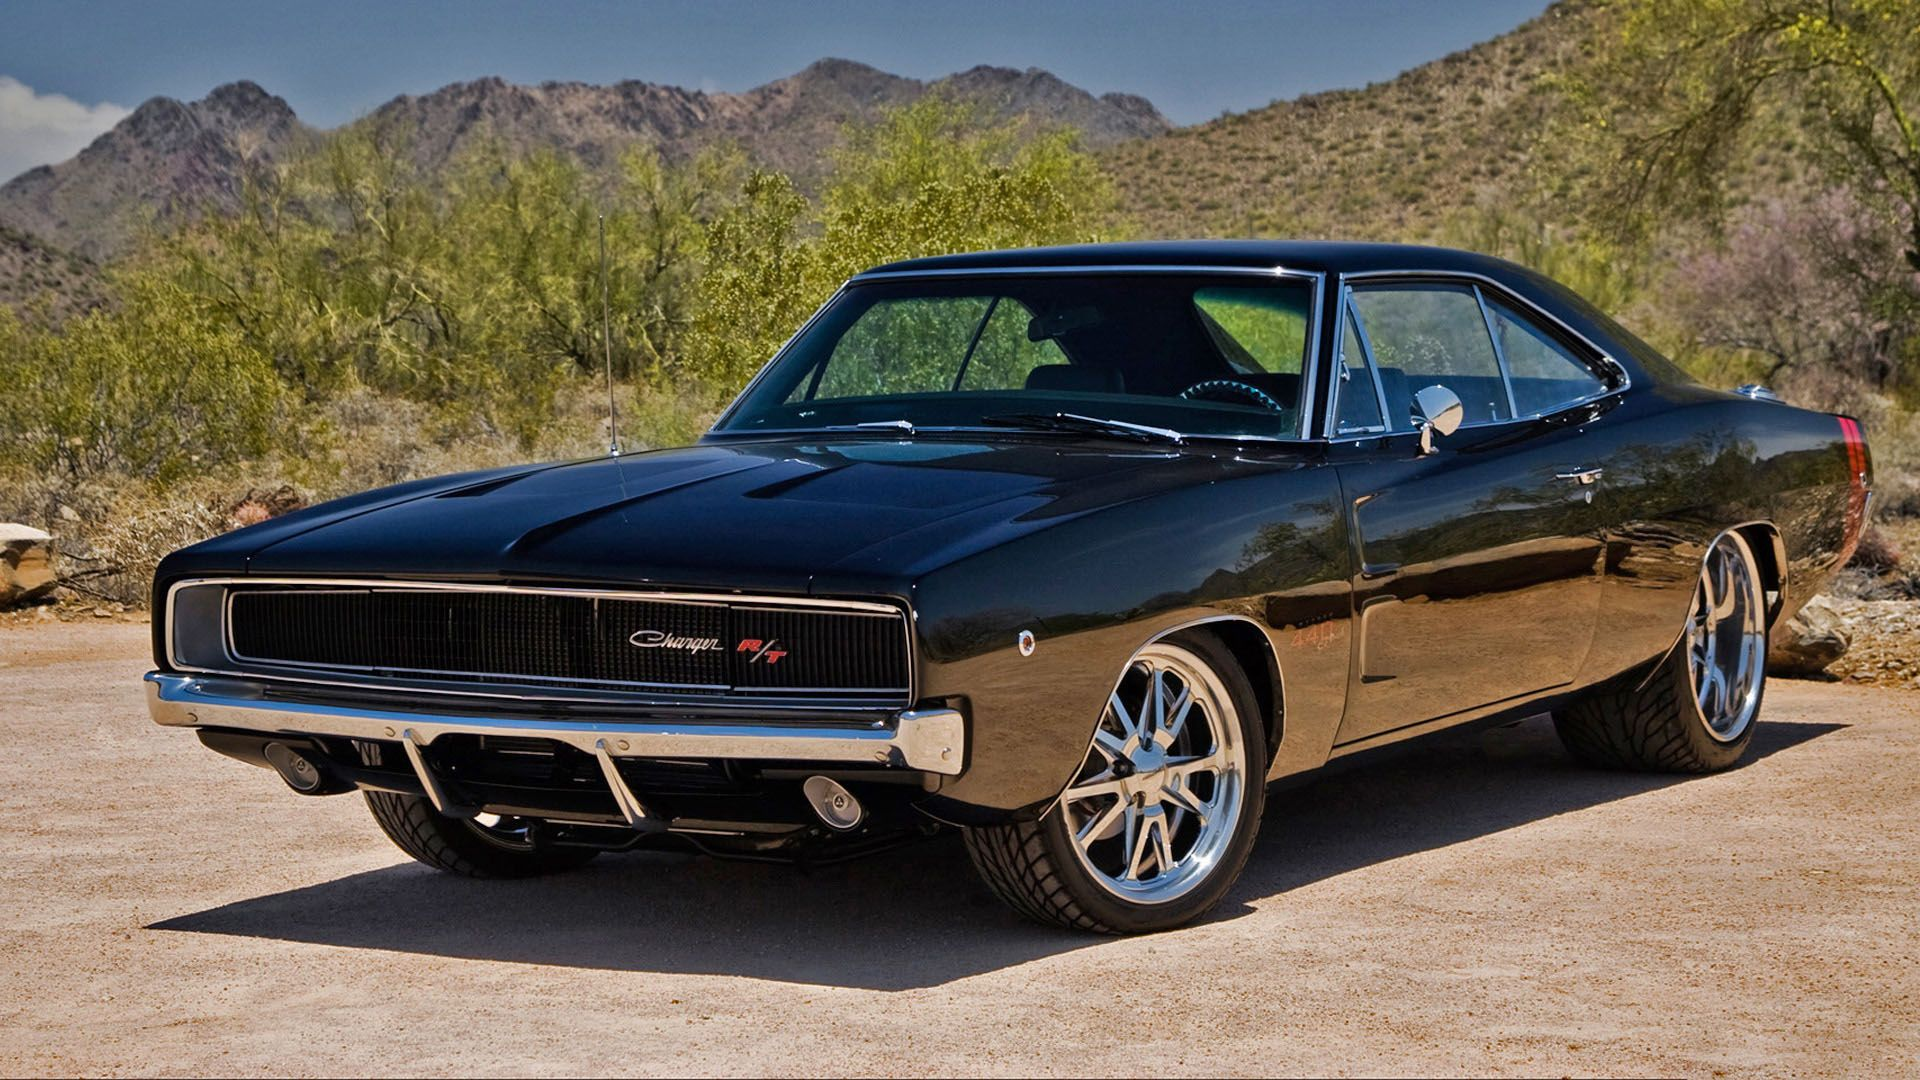 1970 dodge charger black and red  Google Search  classic cars